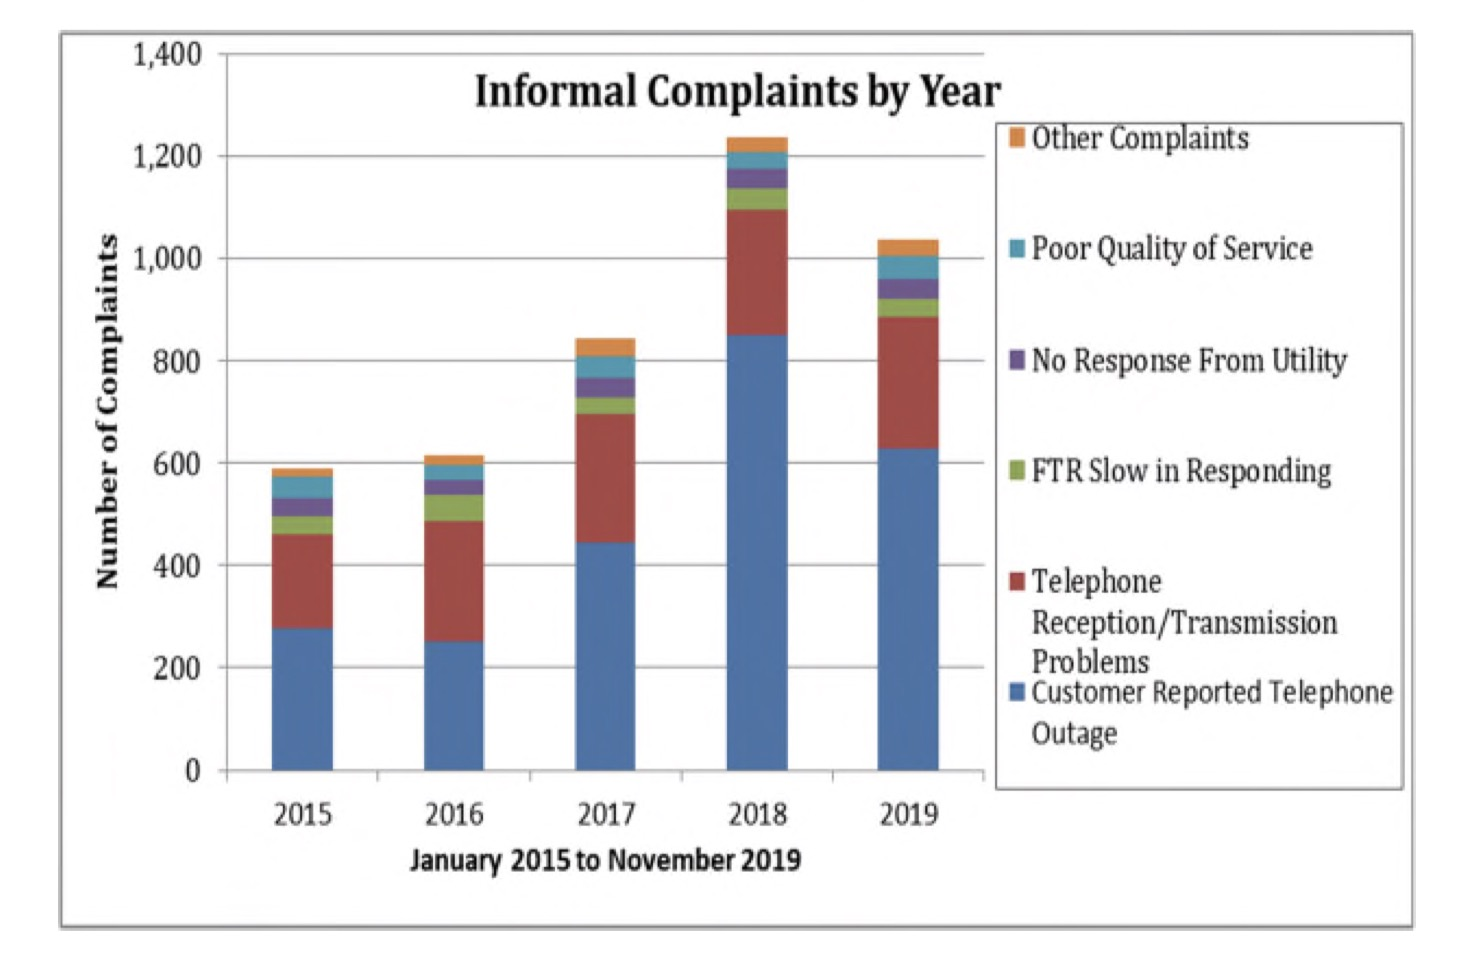 Informal complaints made about Frontier service by year.